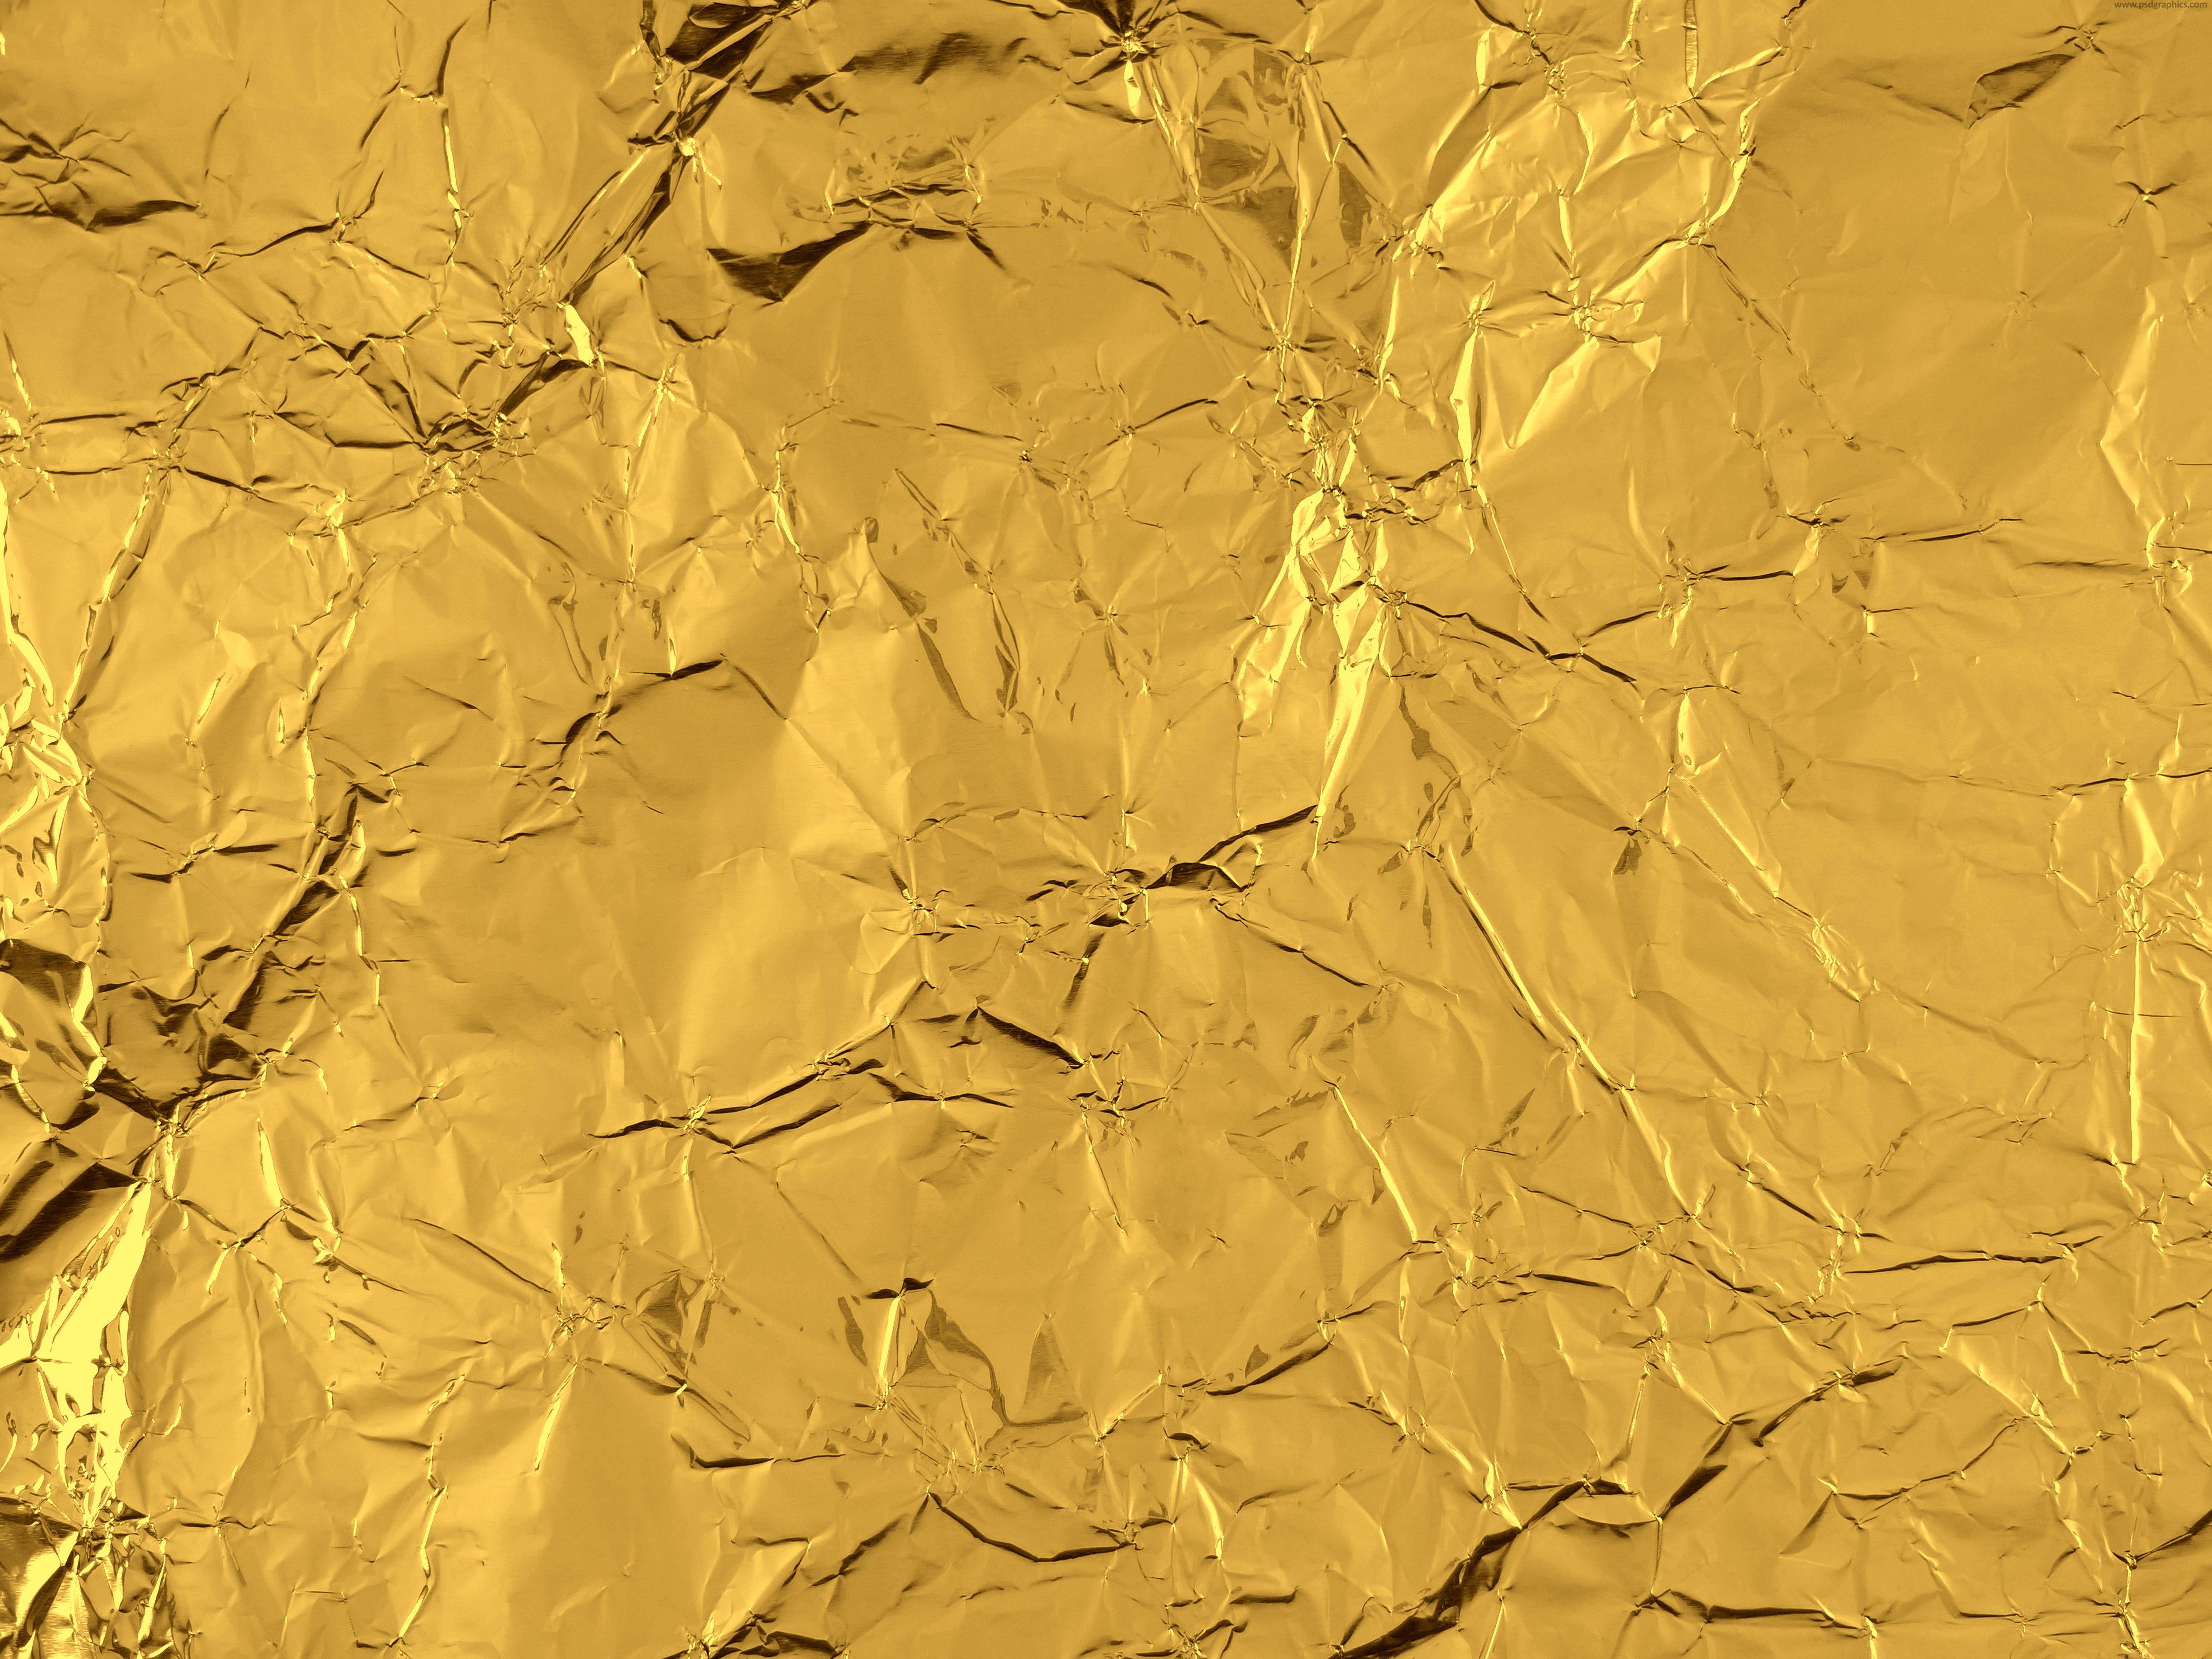 Gold Foil Texture 4k Ultra HD Wallpaper And Background Image